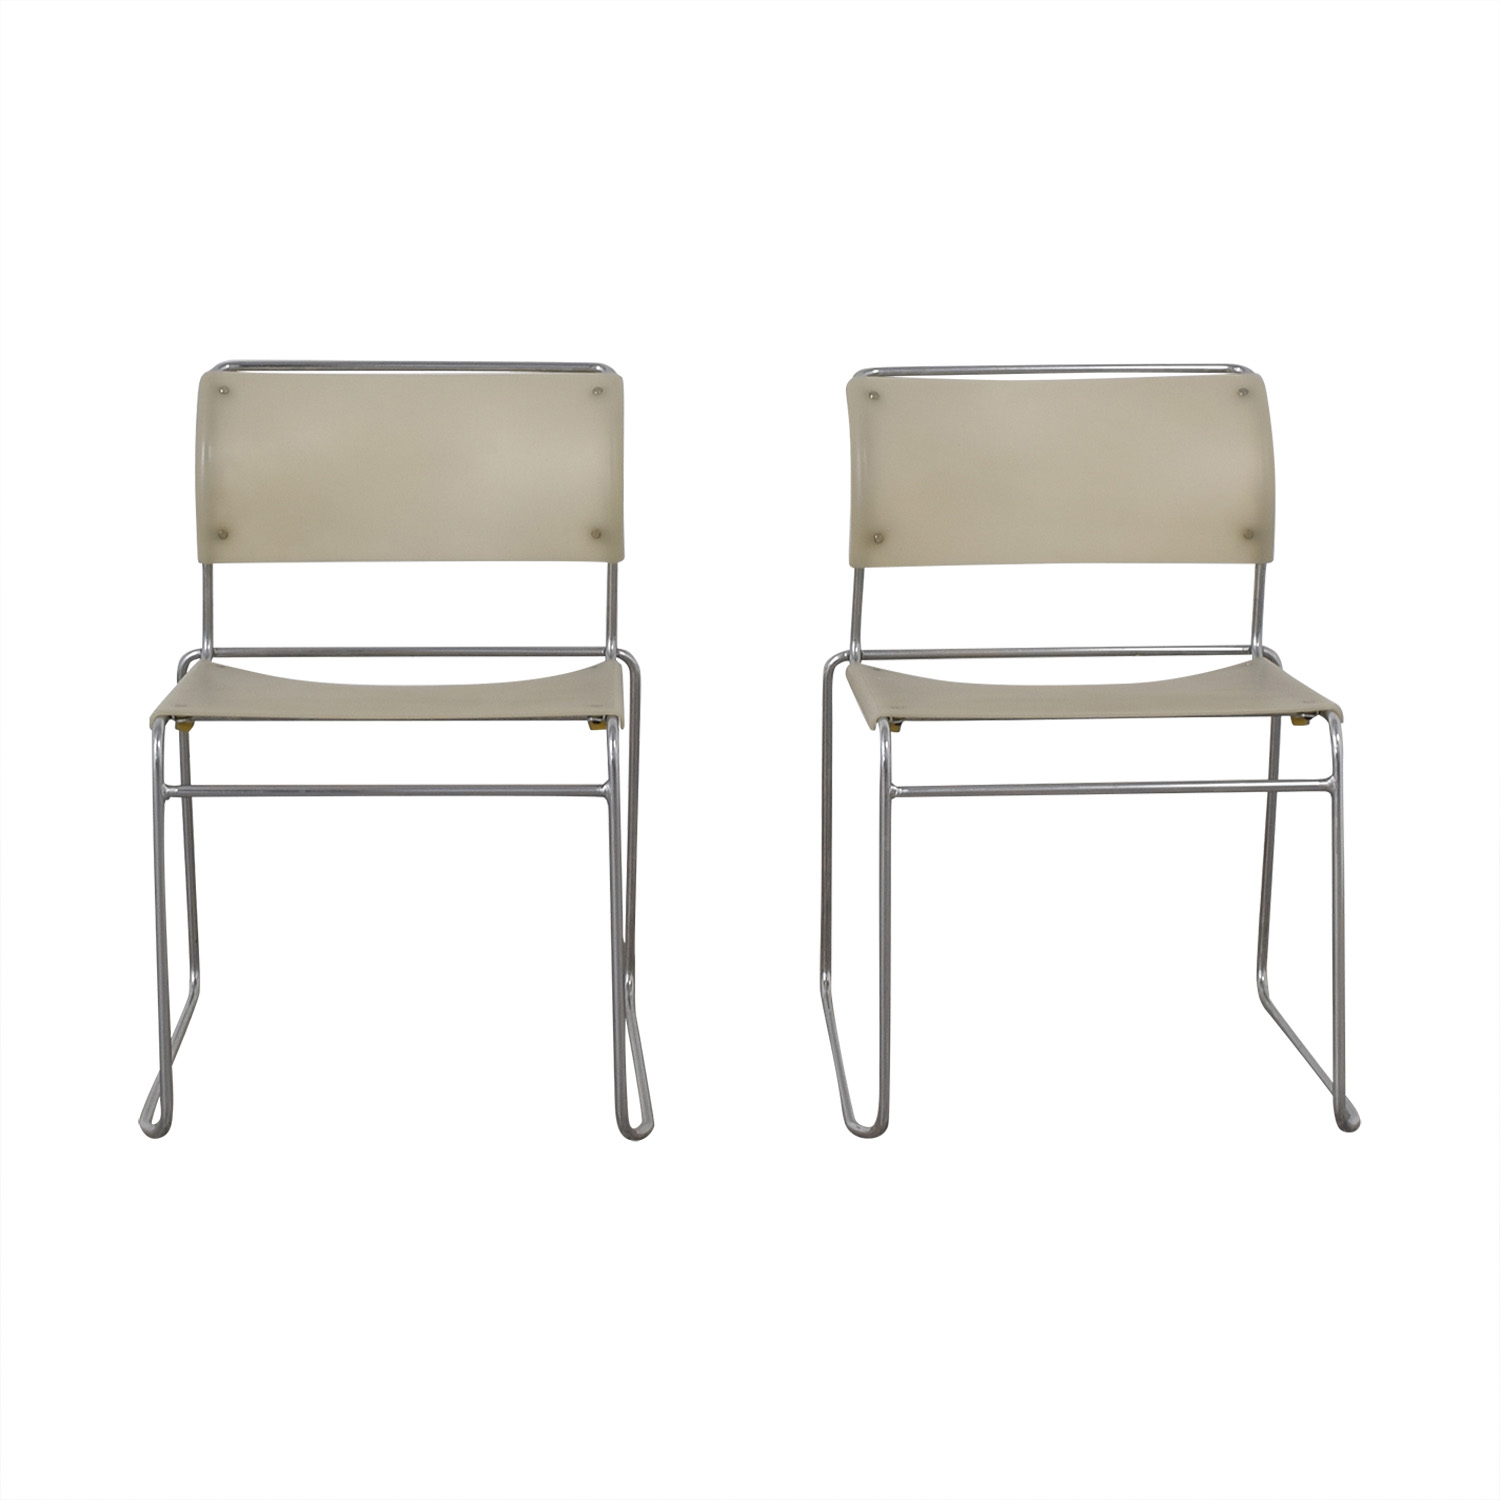 Harter White Sled Base Chairs dimensions